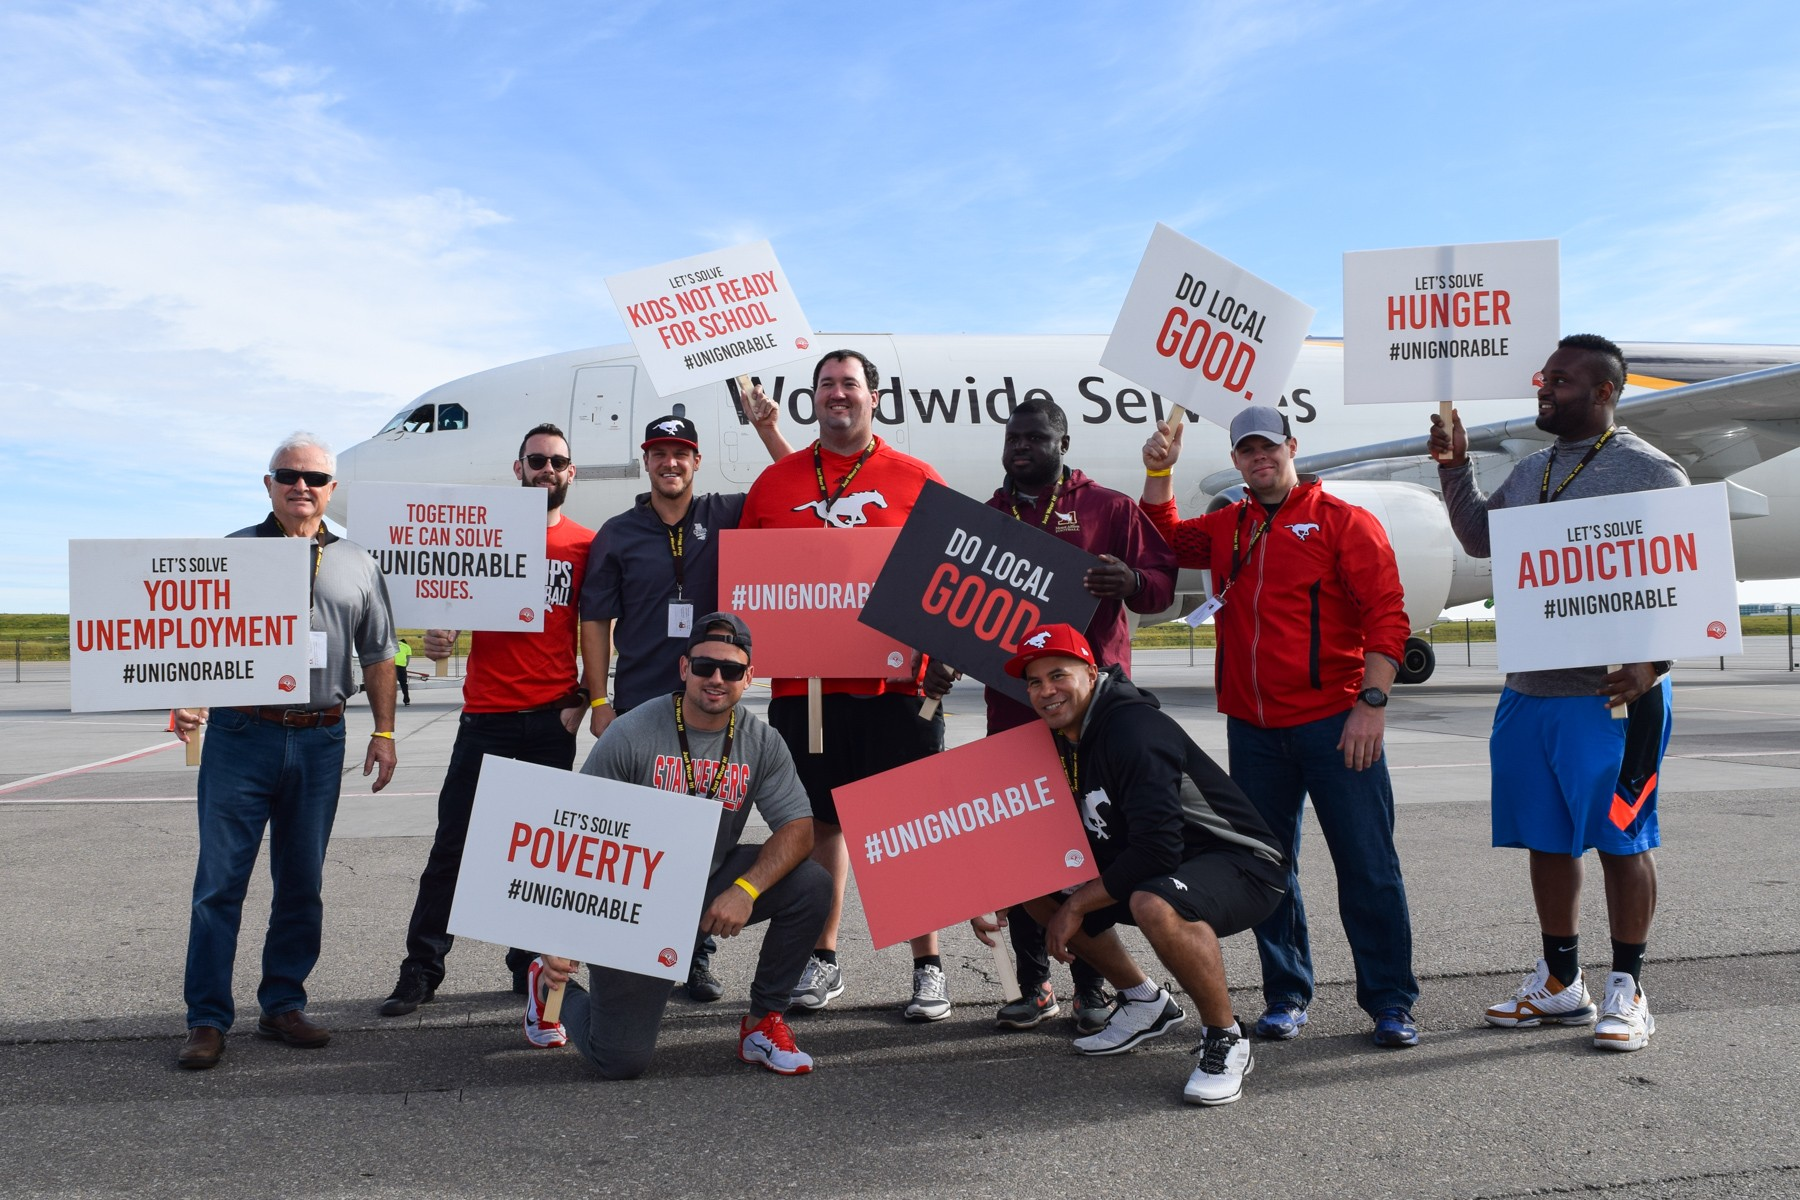 Calgary Stampeders alumni show their support for United Way of Calgary and Area at the annual Plane Pull event September 15.